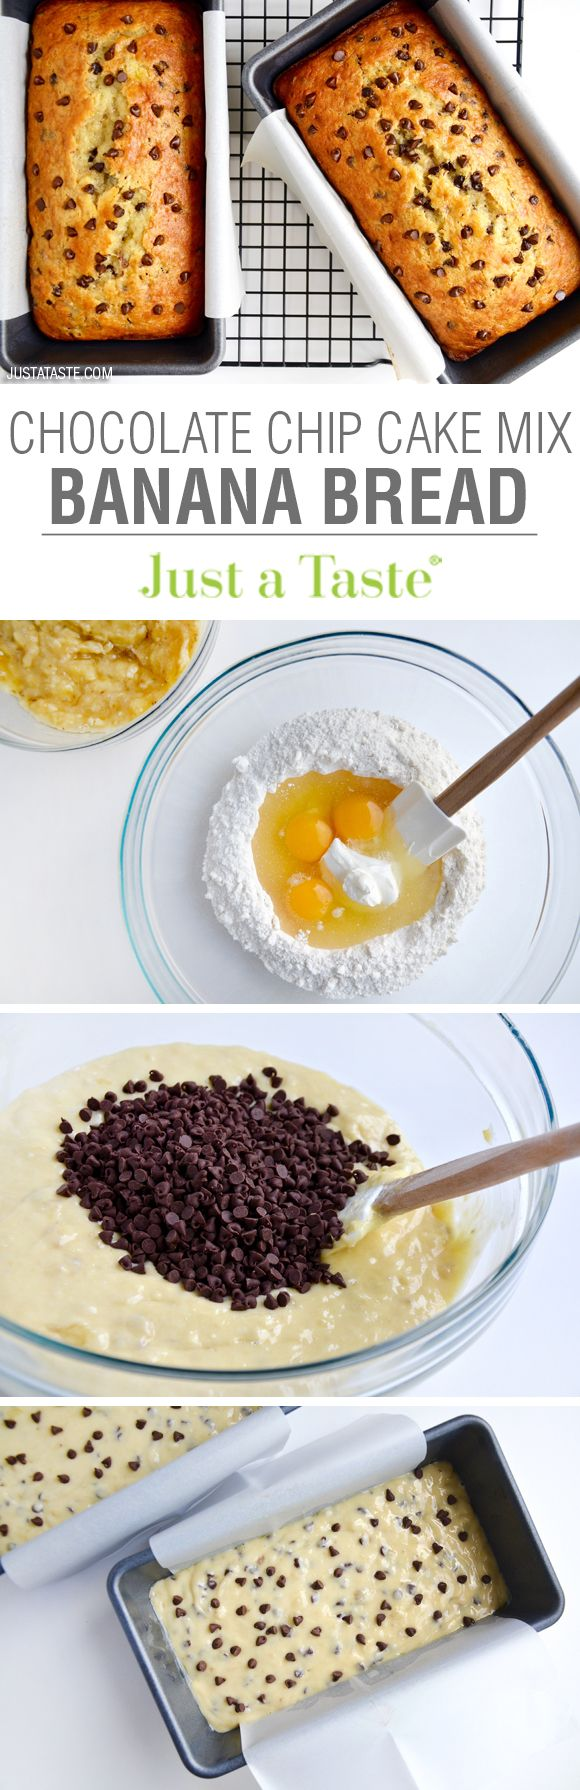 Chocolate Chip Cake Mix Banana Bread | recipe via justataste.com